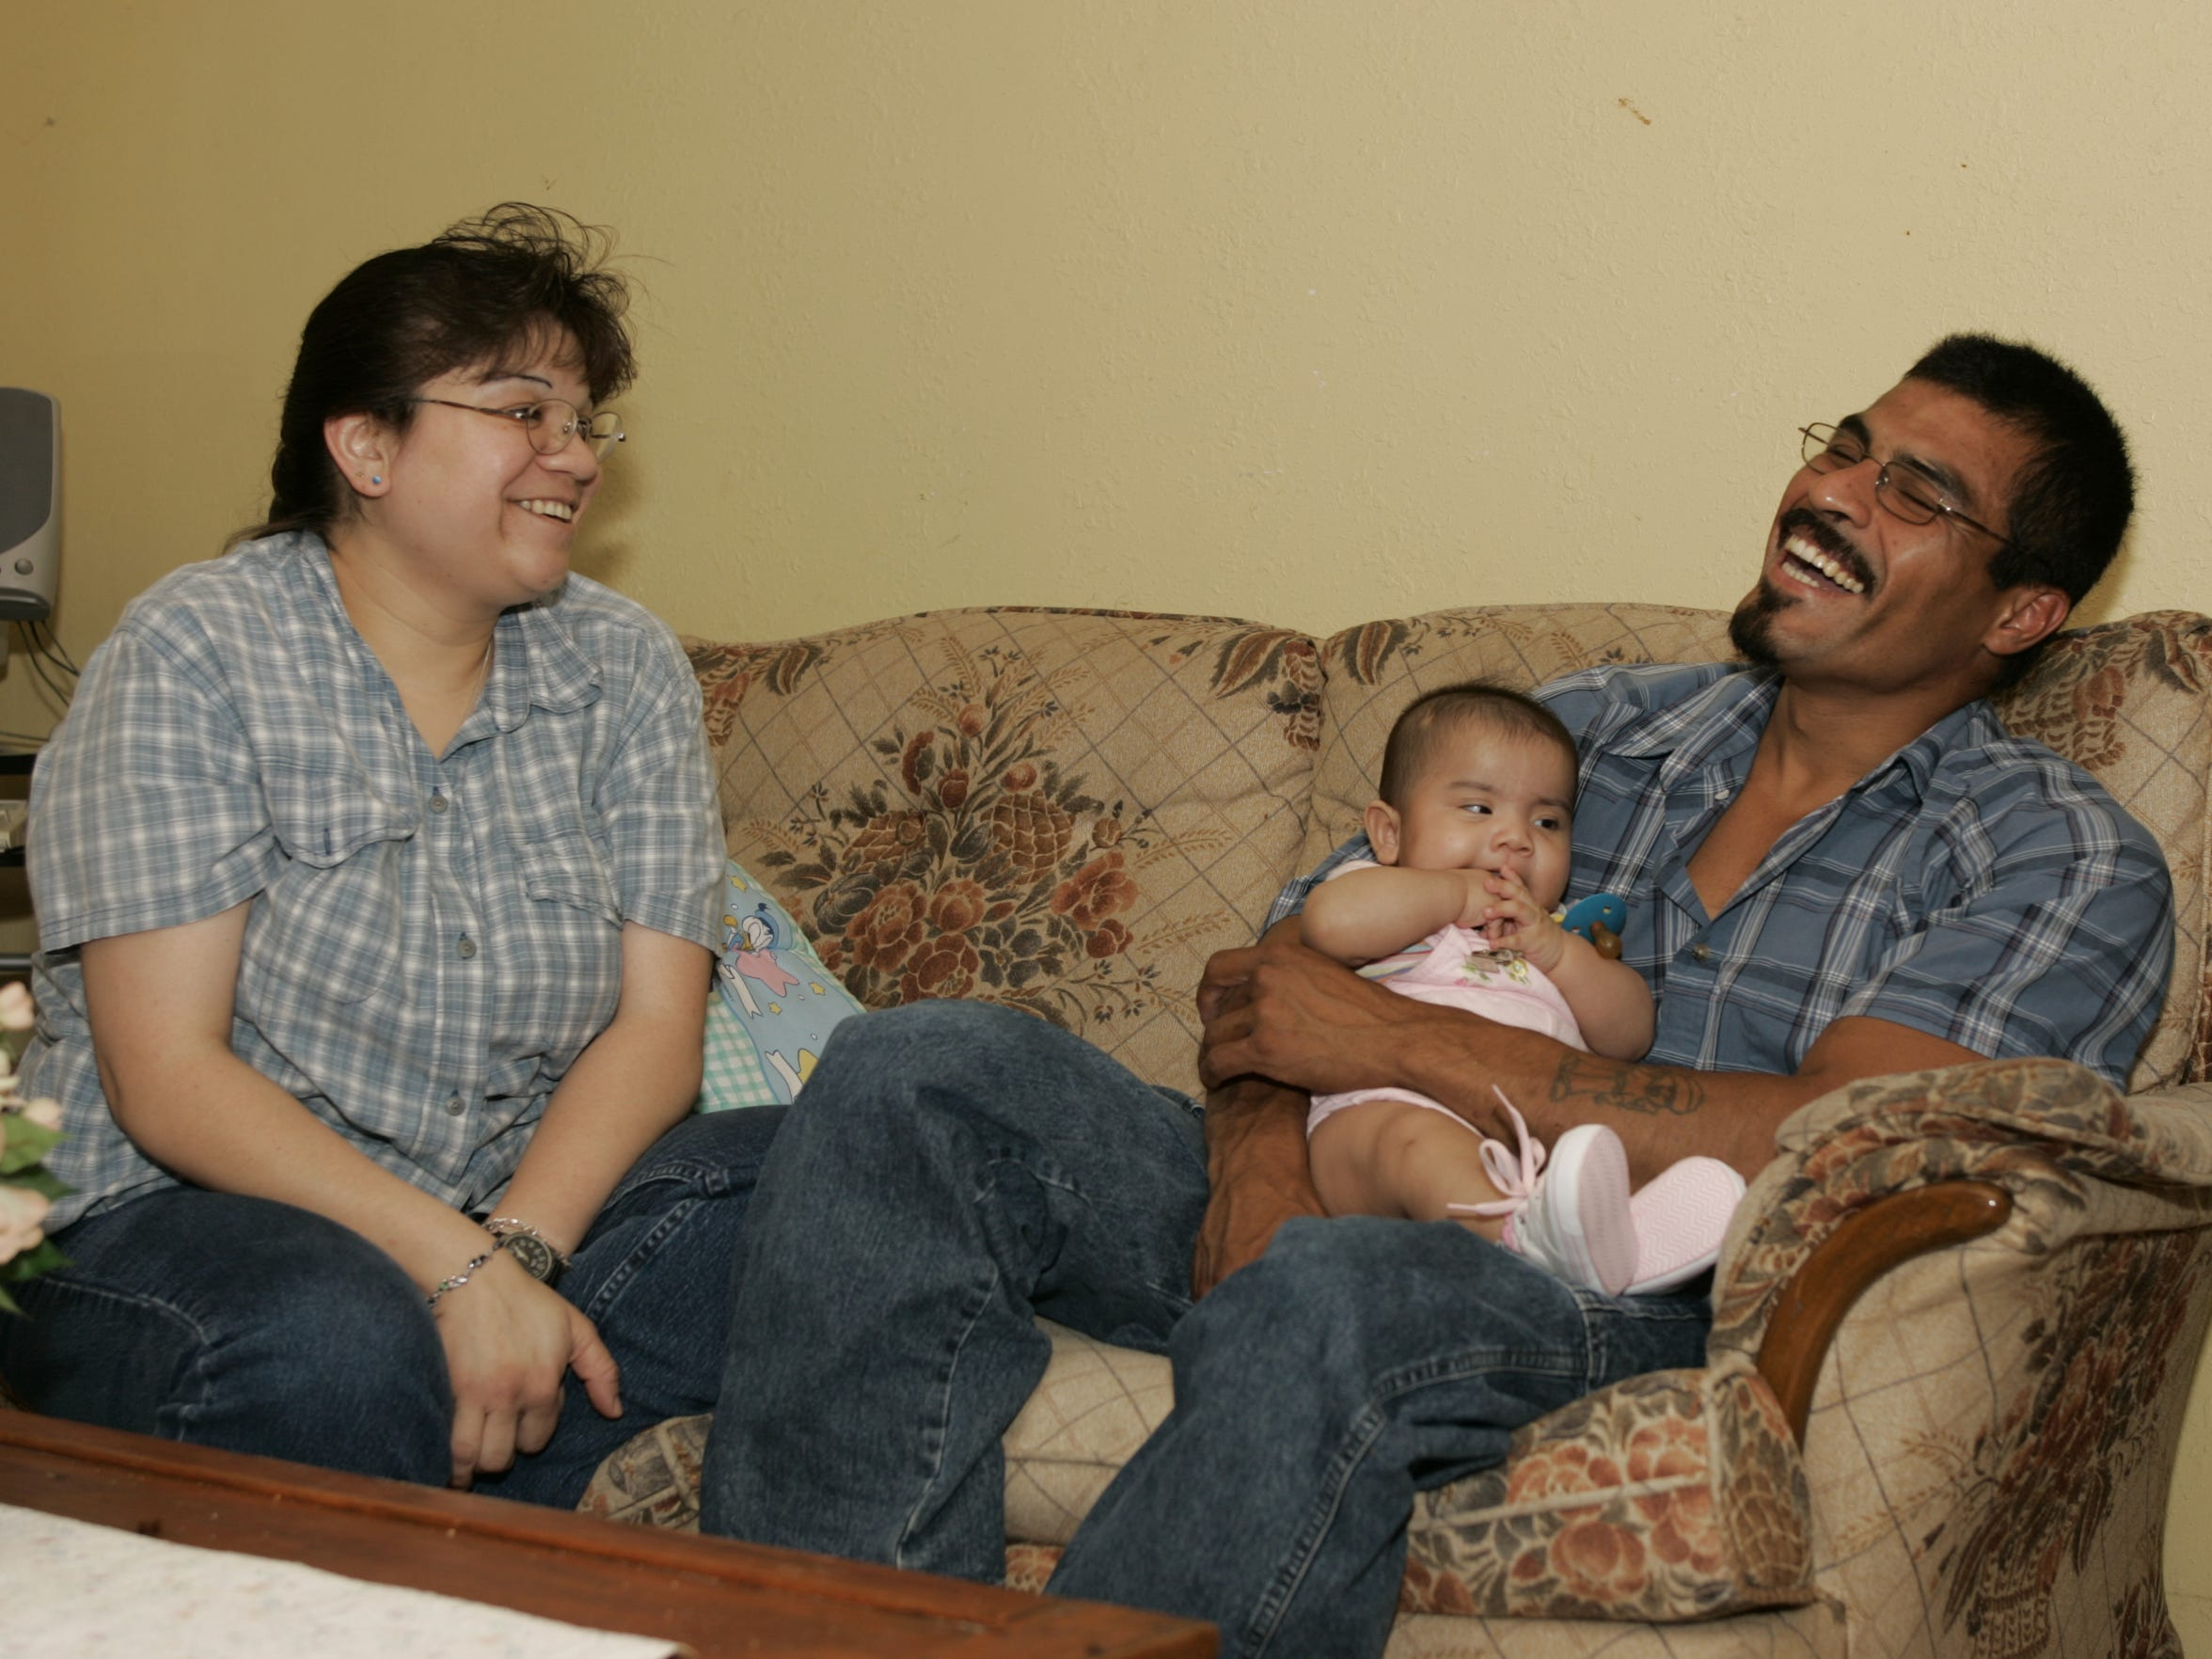 Silvestre Segovia, then 32, with his wife, Ortencia, and their daughter, Destinee, then 5 months old, in their home in Kerrville, Texas, in May 2005.